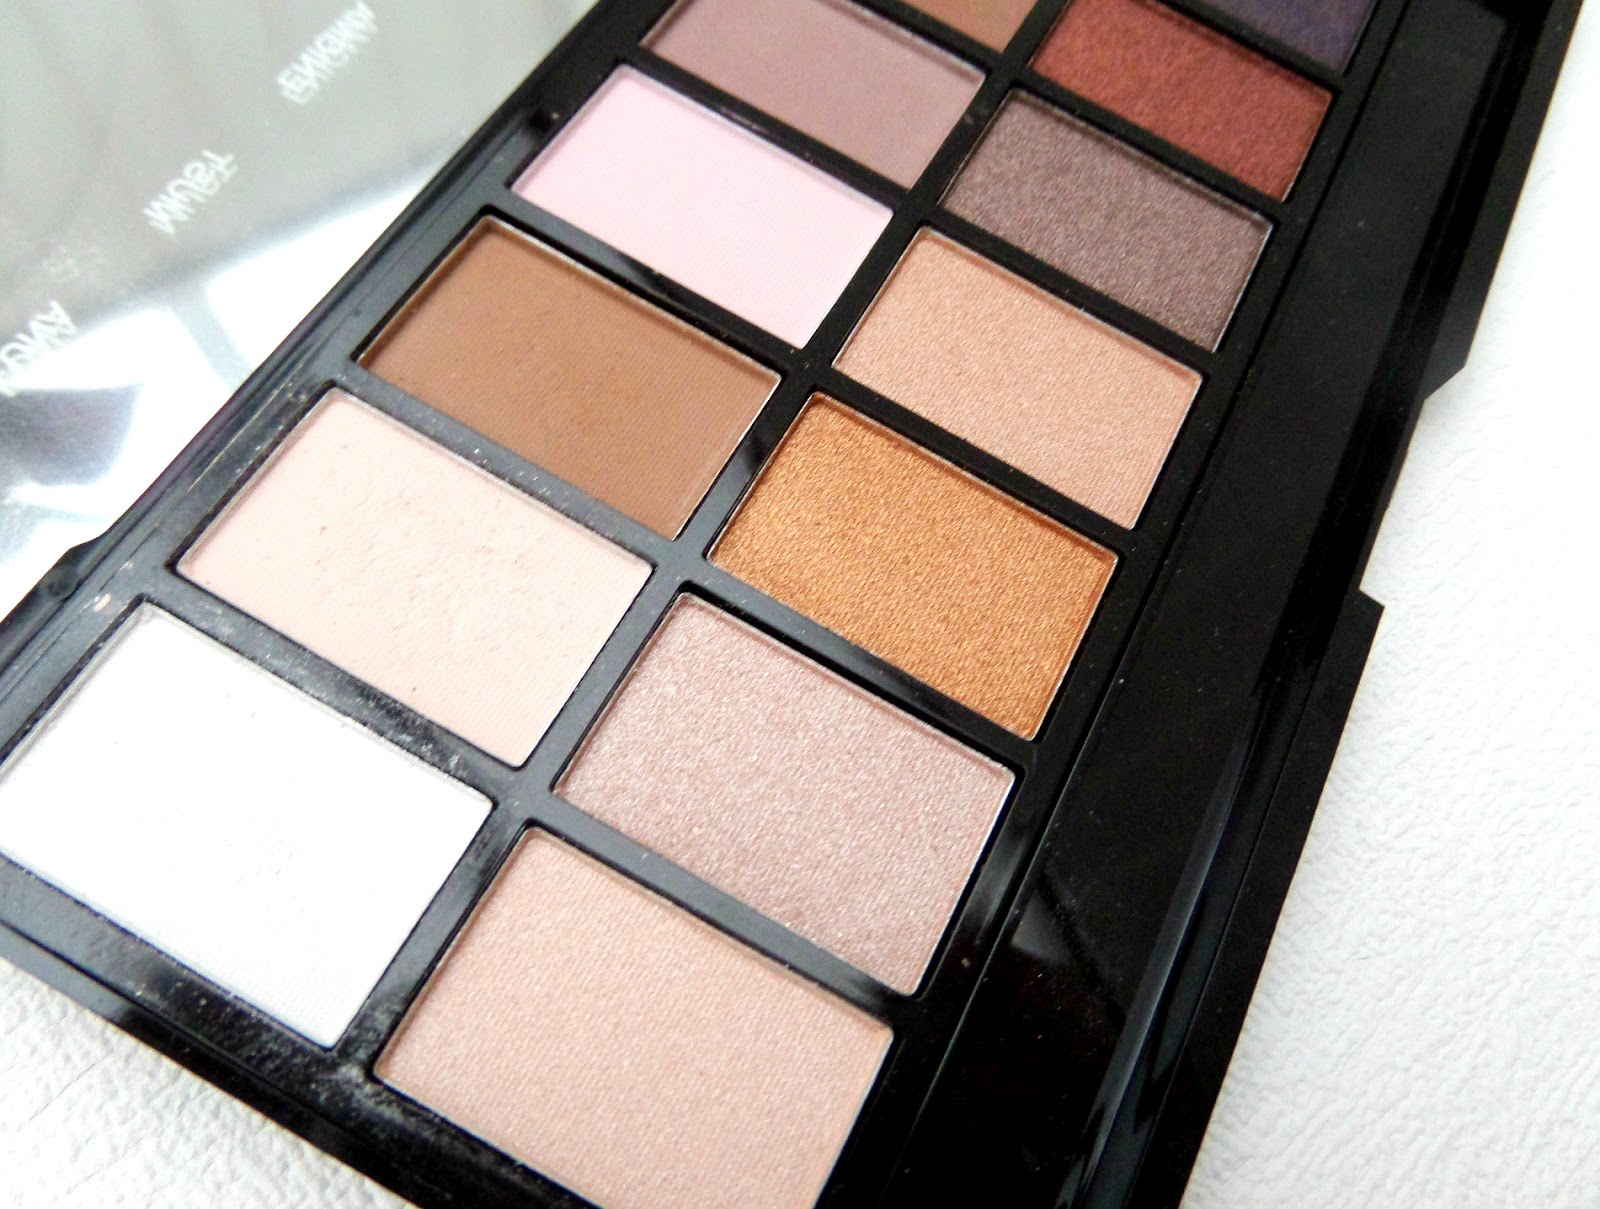 Makeup Revolution Iconic Pro 1 Palette The Swatches